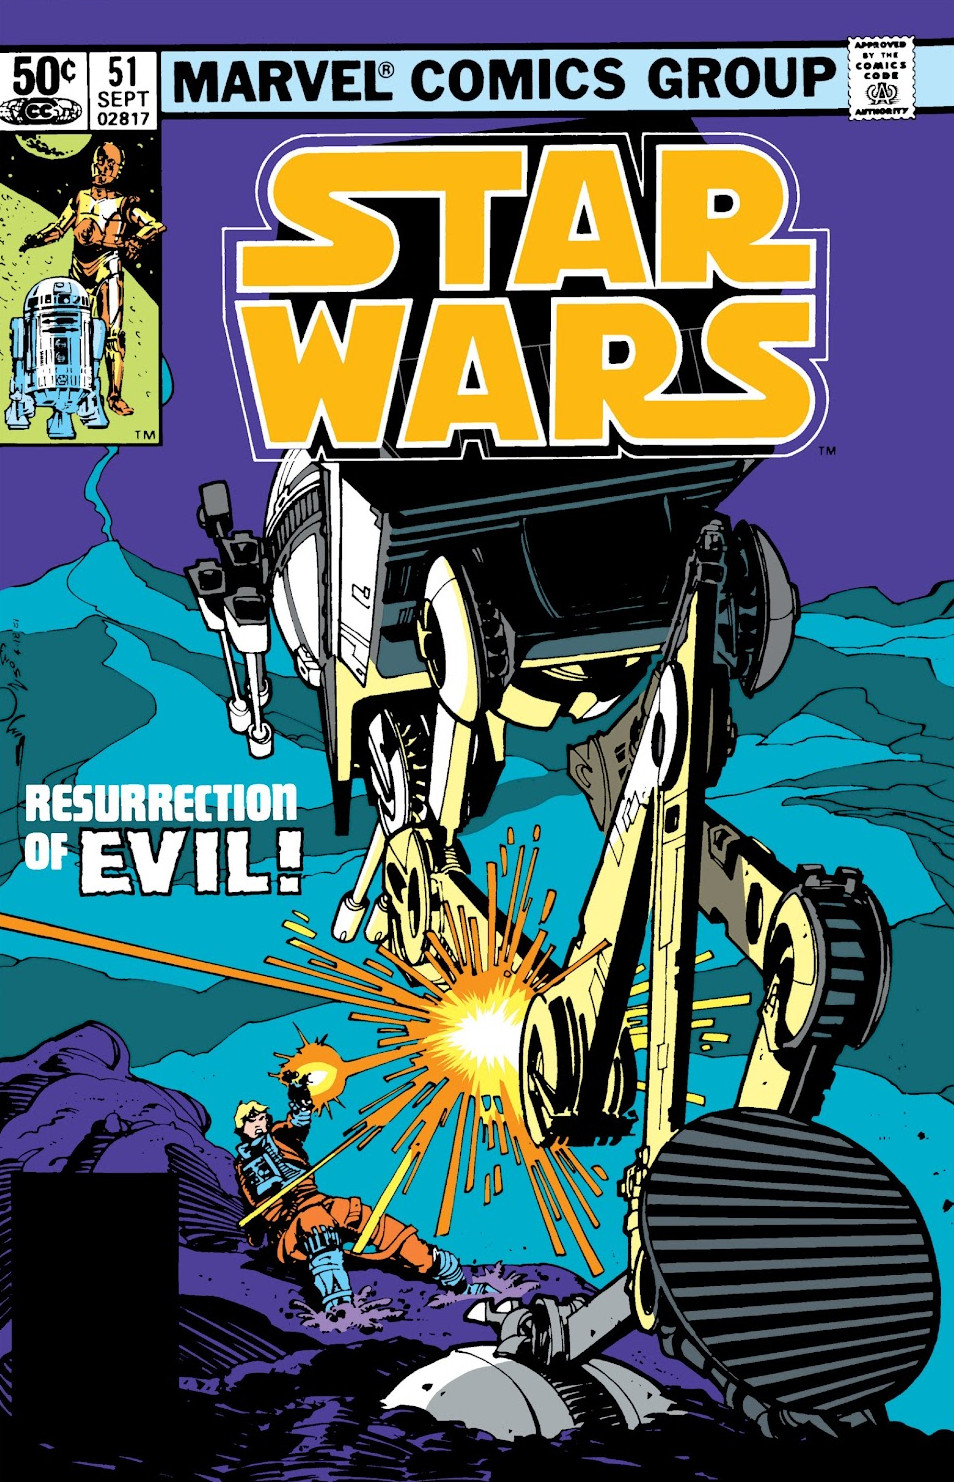 Star Wars Vol 1 51